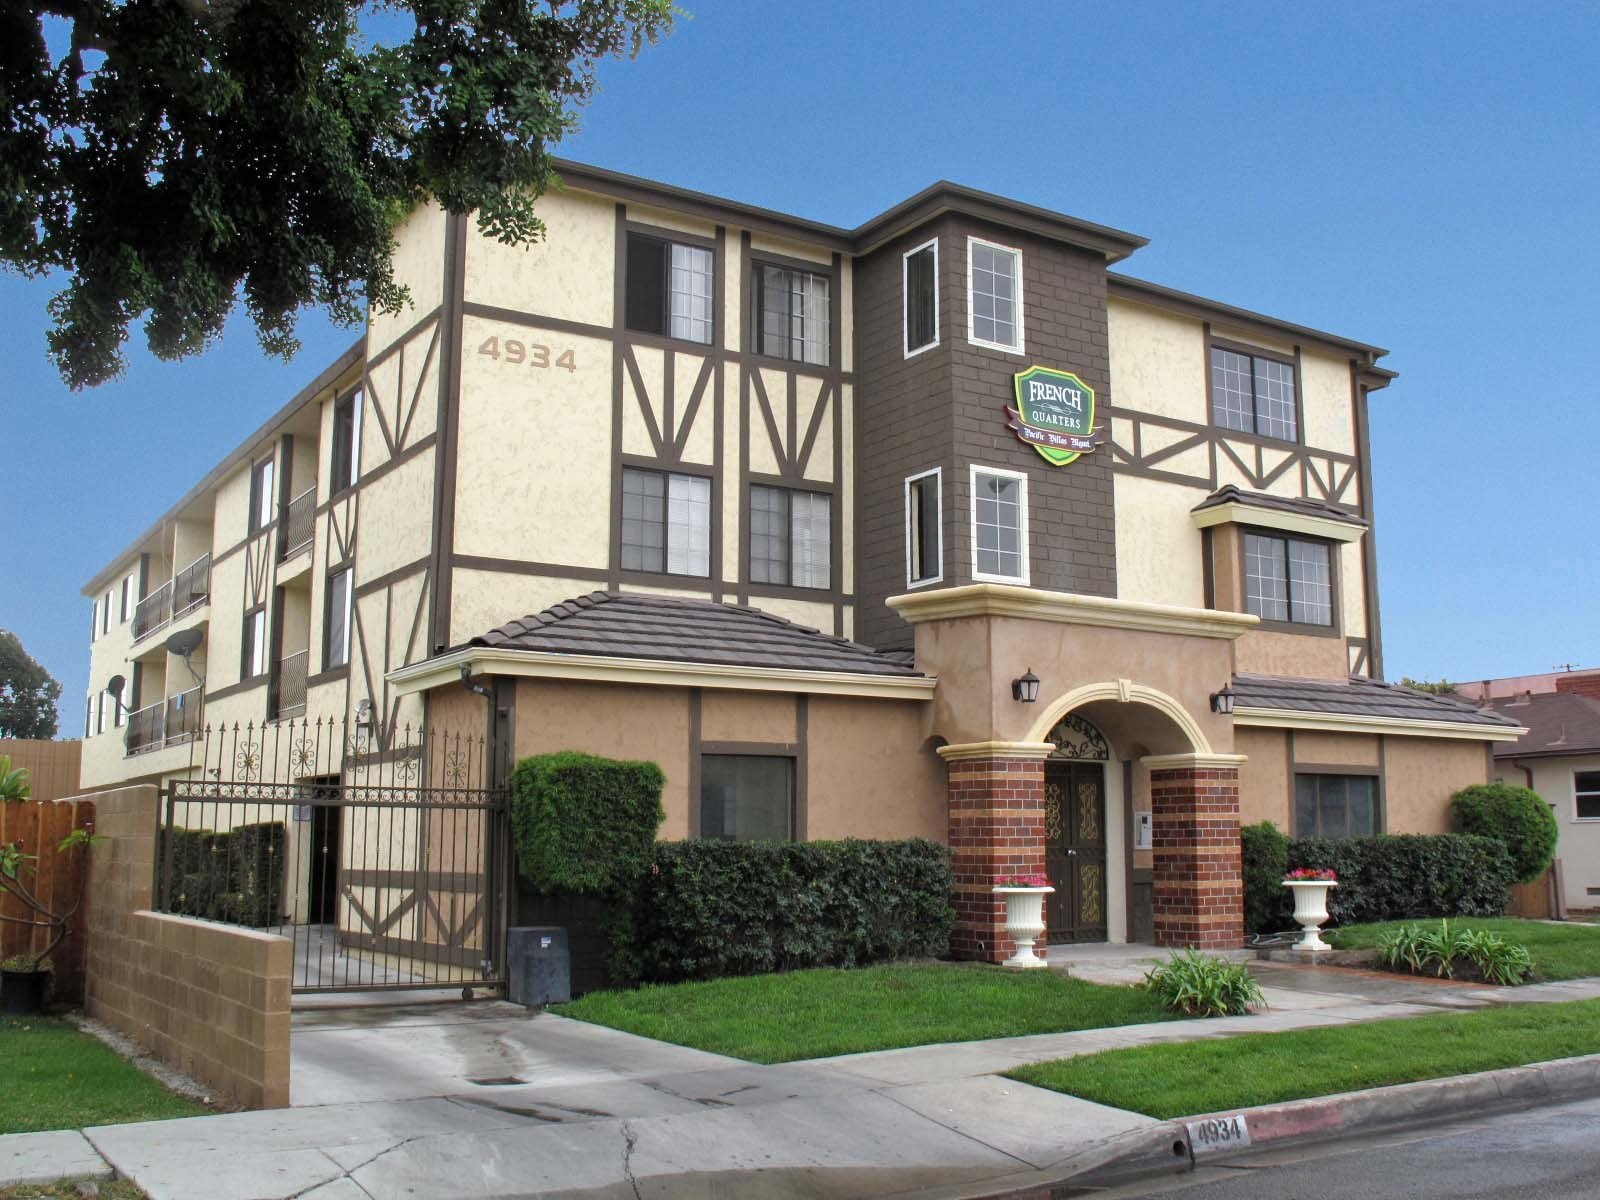 Best 4934 W 119Th Street Hawthorne Hawthorne Ca 90250 1 With Pictures